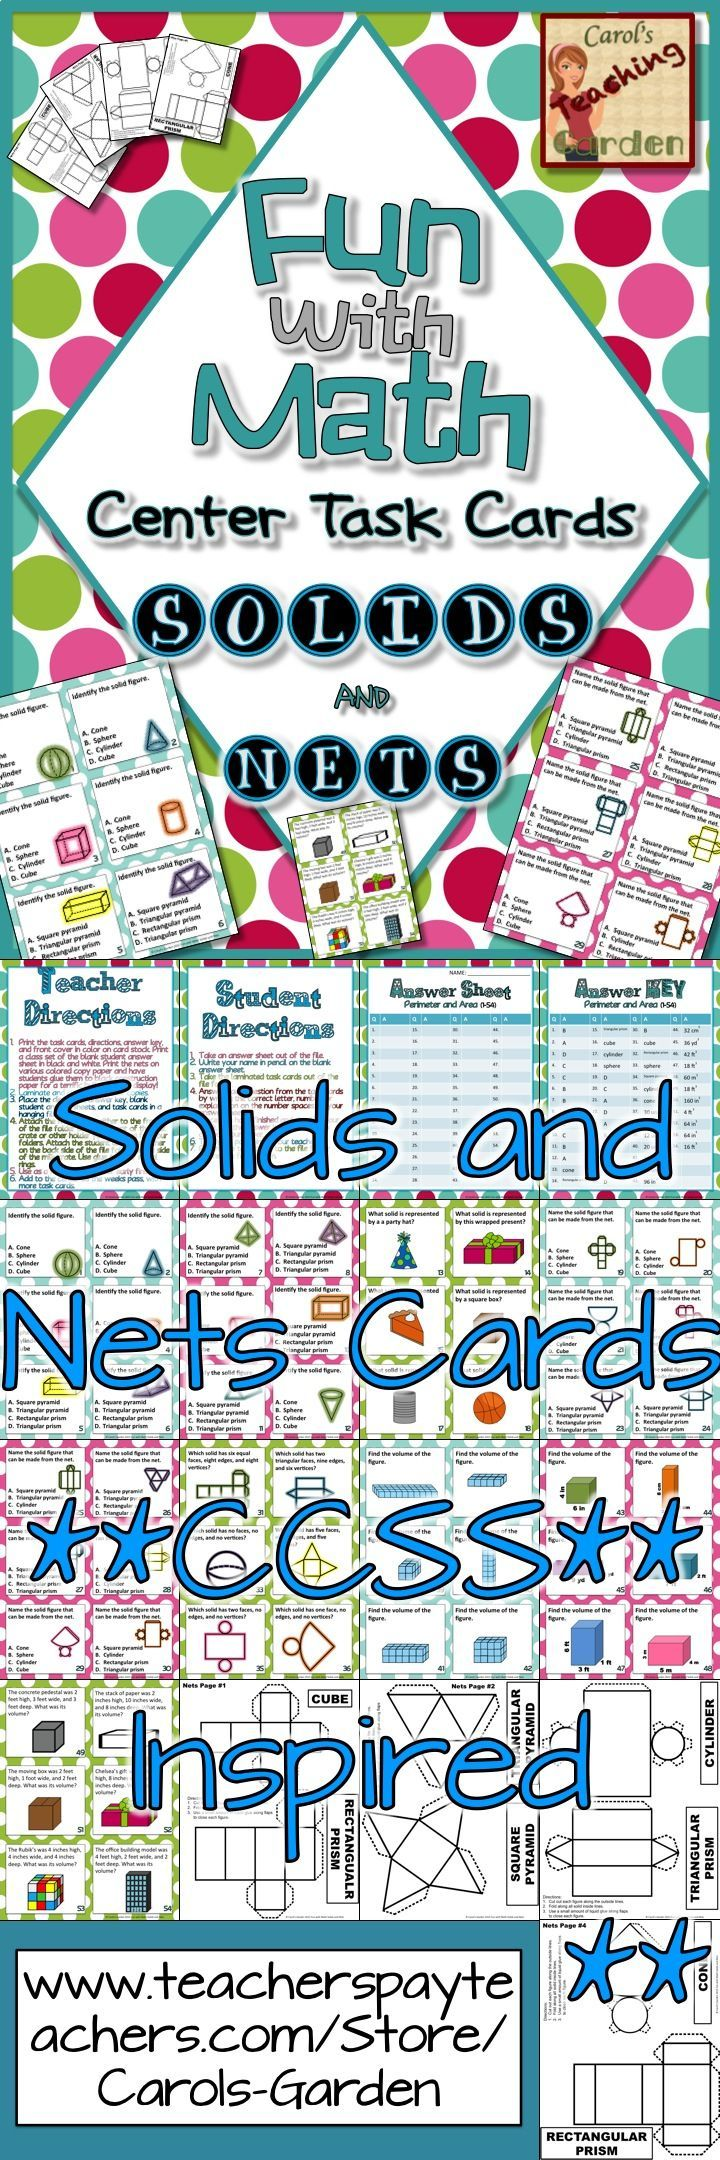 54 #solids #volume and #nets #Math center #TaskCards, including 18 each for low, medium, and high students for each standard taught, including: 18 cards identifying solid figures 18 cards identifying figures which can be made with nets shown 18 cards finding the volume of figures Student directions Teacher directions Answer Key 8 nets with labels suitable for copying as manipulatives for students $